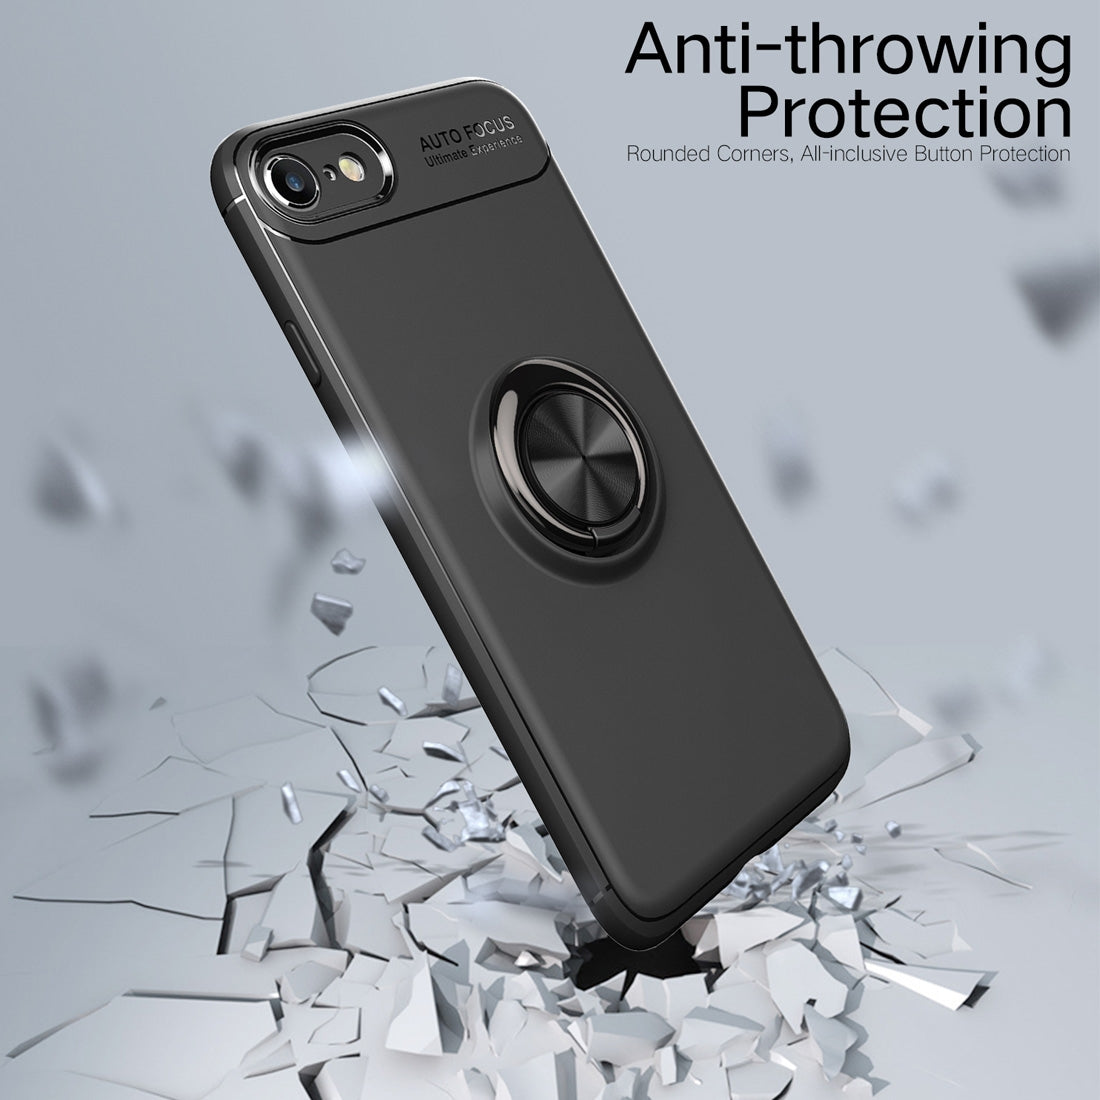 Metal Ring Holder 360 Degree Rotating TPU Case for iPhone 8 & 7 (Black)